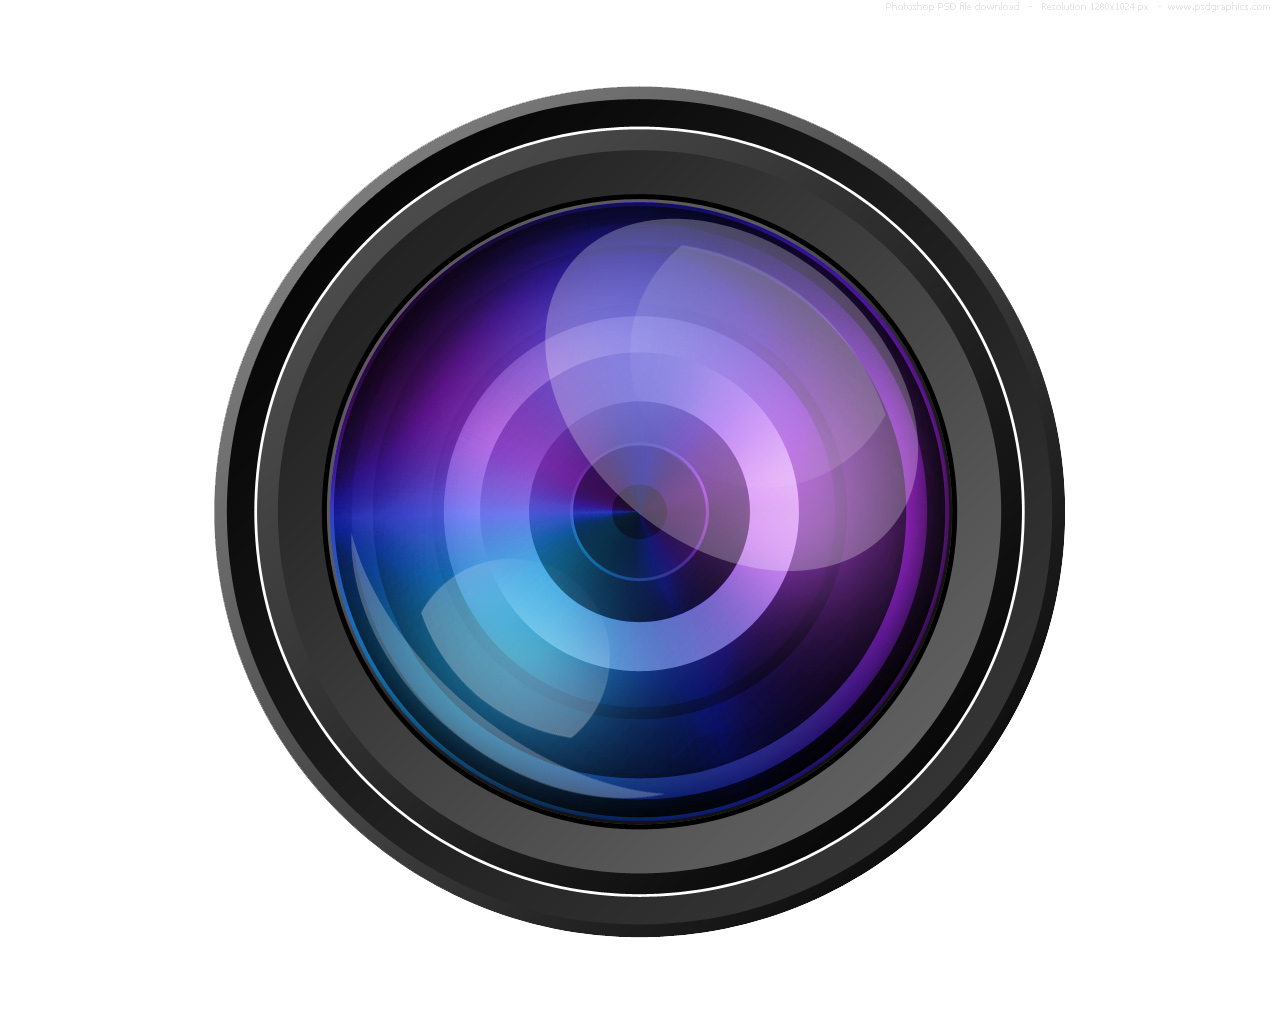 Video Camera Lens Transparent Image PNG Image